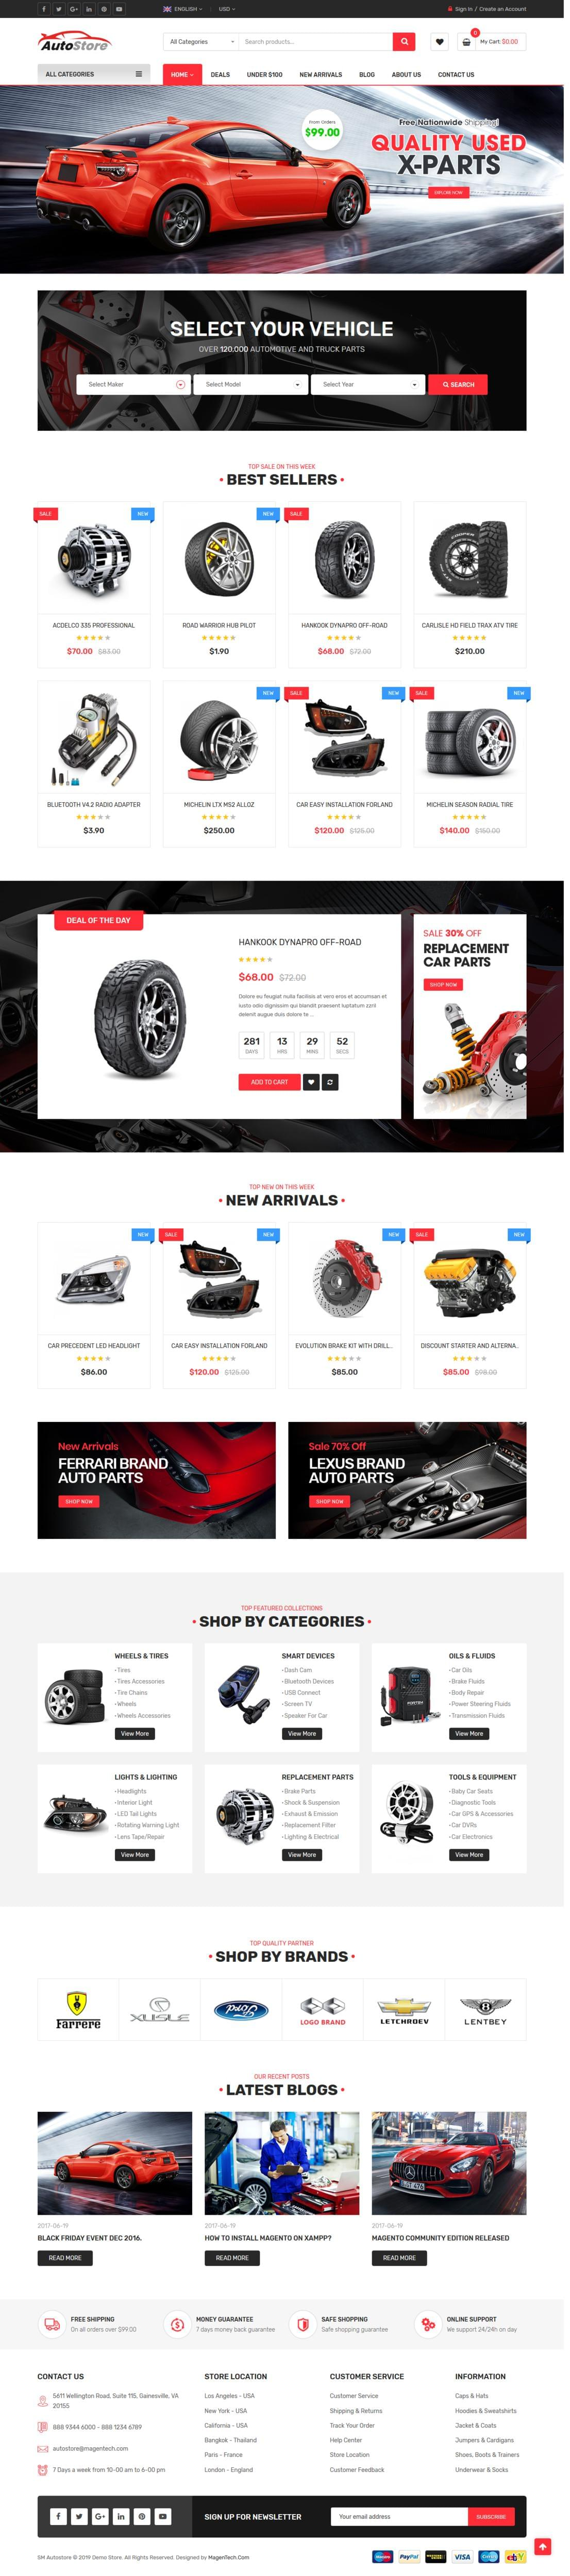 Magento Theme Installation + Demo Setup (+ Plugin & Logo Setup) by AritonangWofa - 115978